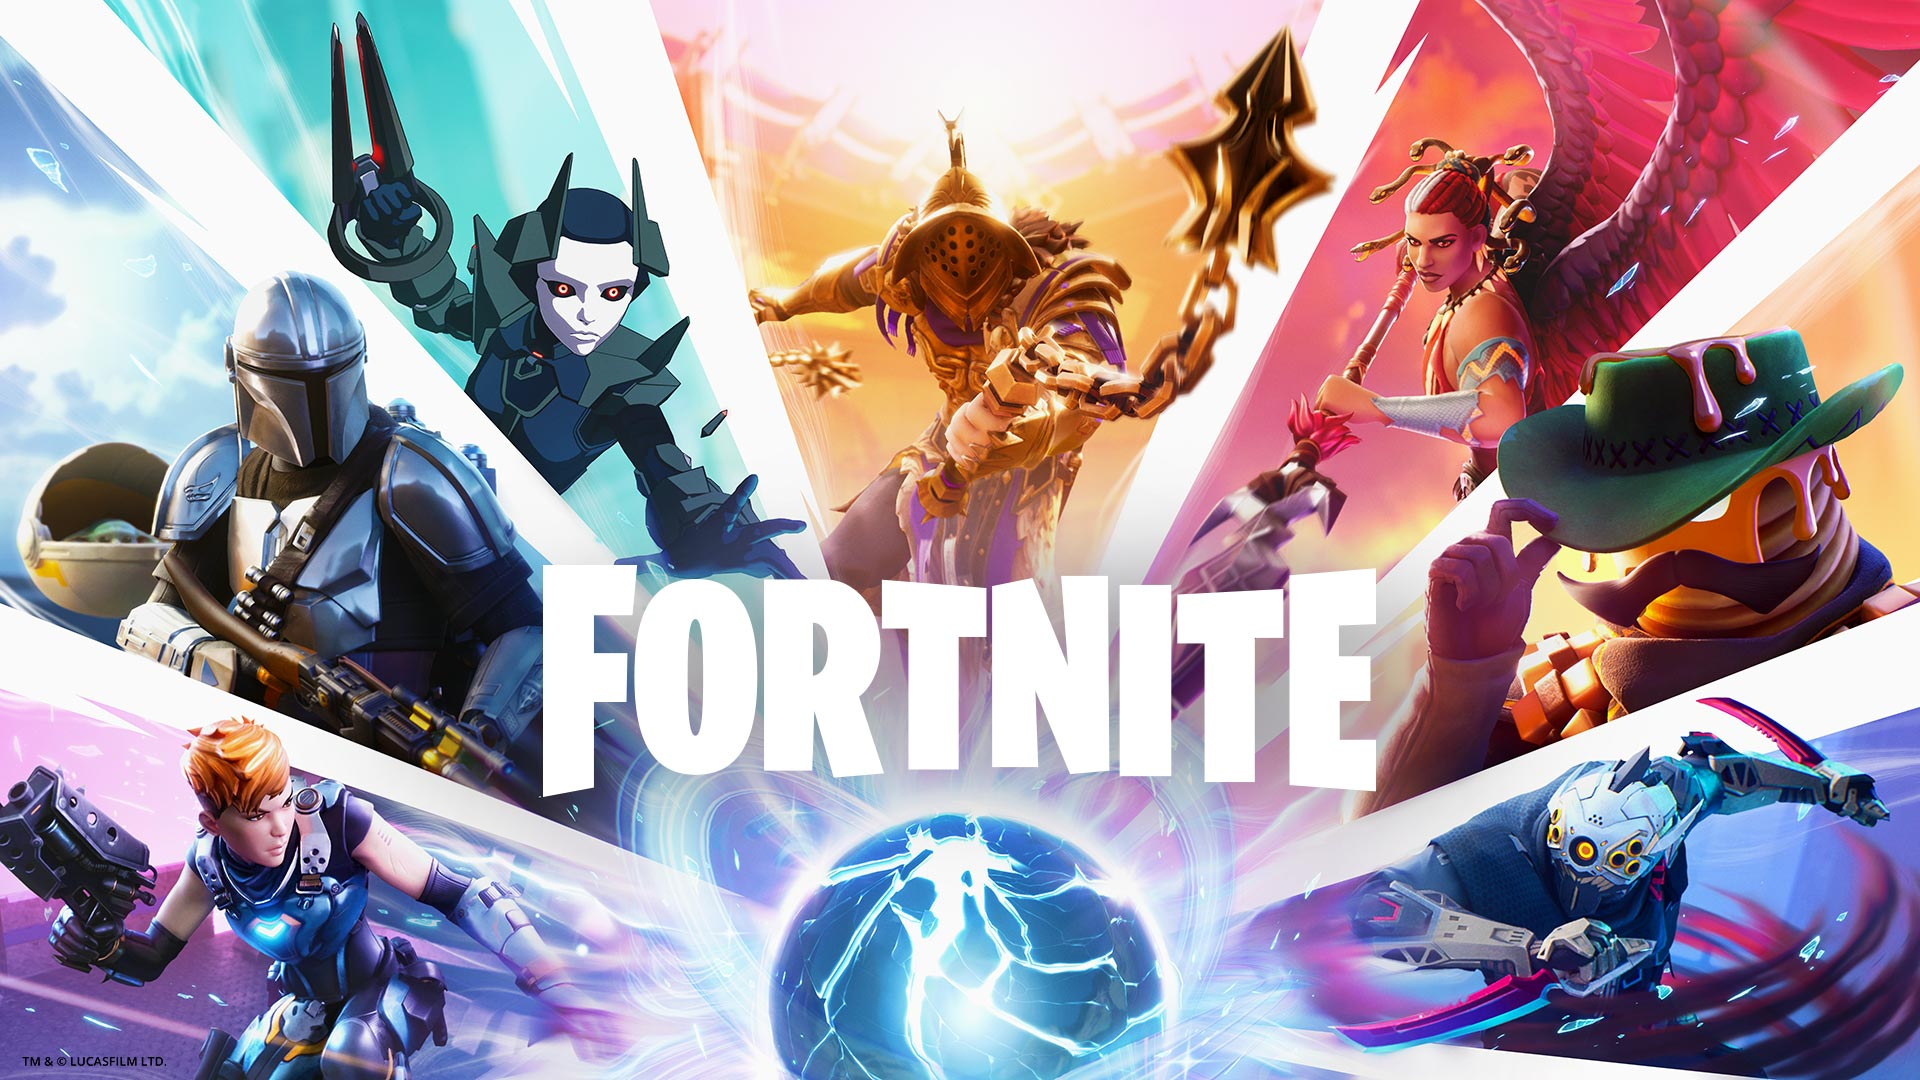 Fortnite, A collage of characters, including The Mandalorian, are all centered around a glowing blue orb.